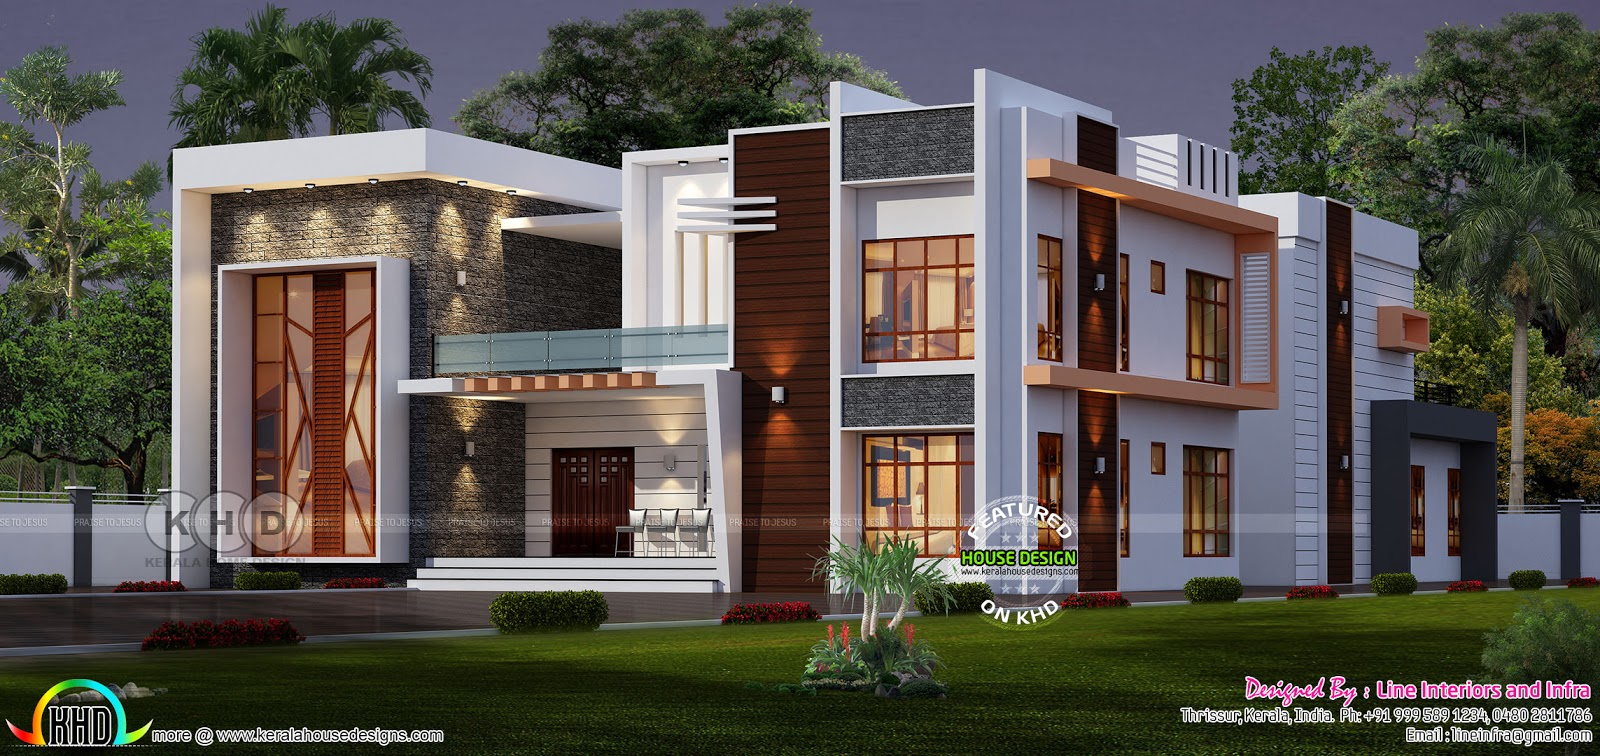 Elevated contemporary home plan kerala home design and for House plans elevated